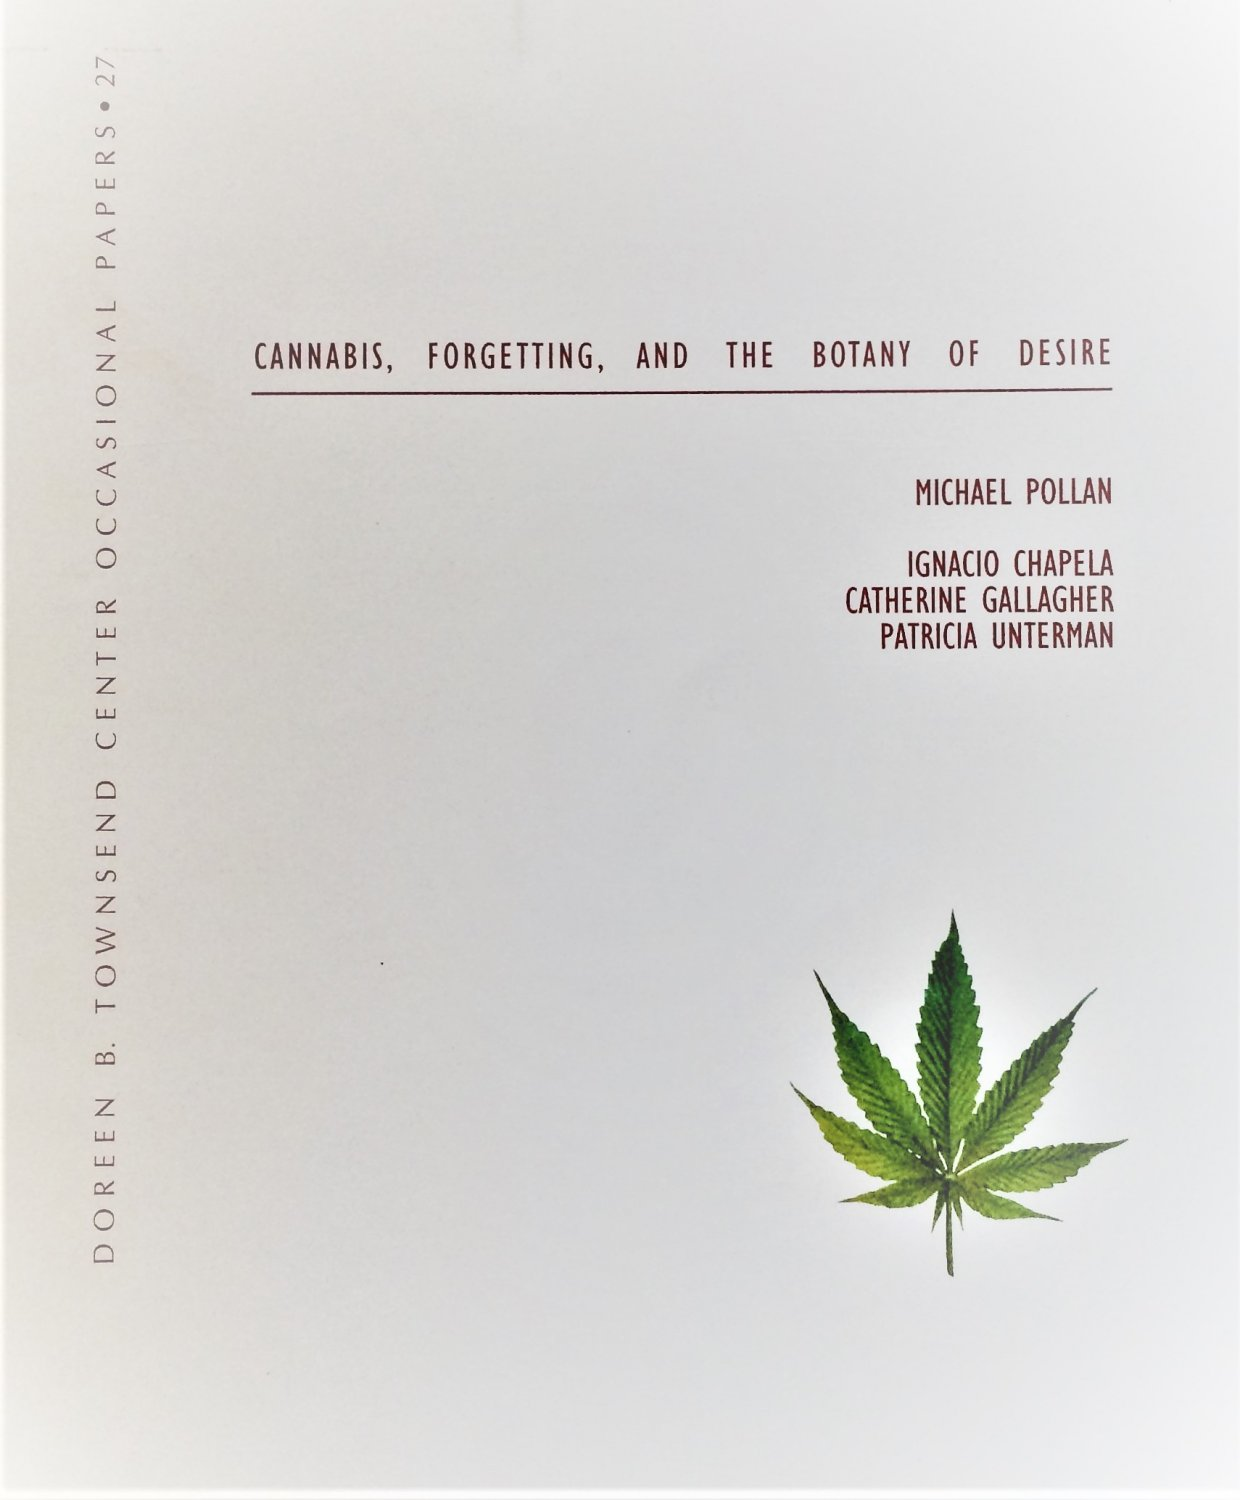 Cannabis, Forgetting, and the Botany of Desire by Michael Pollan [eBook]